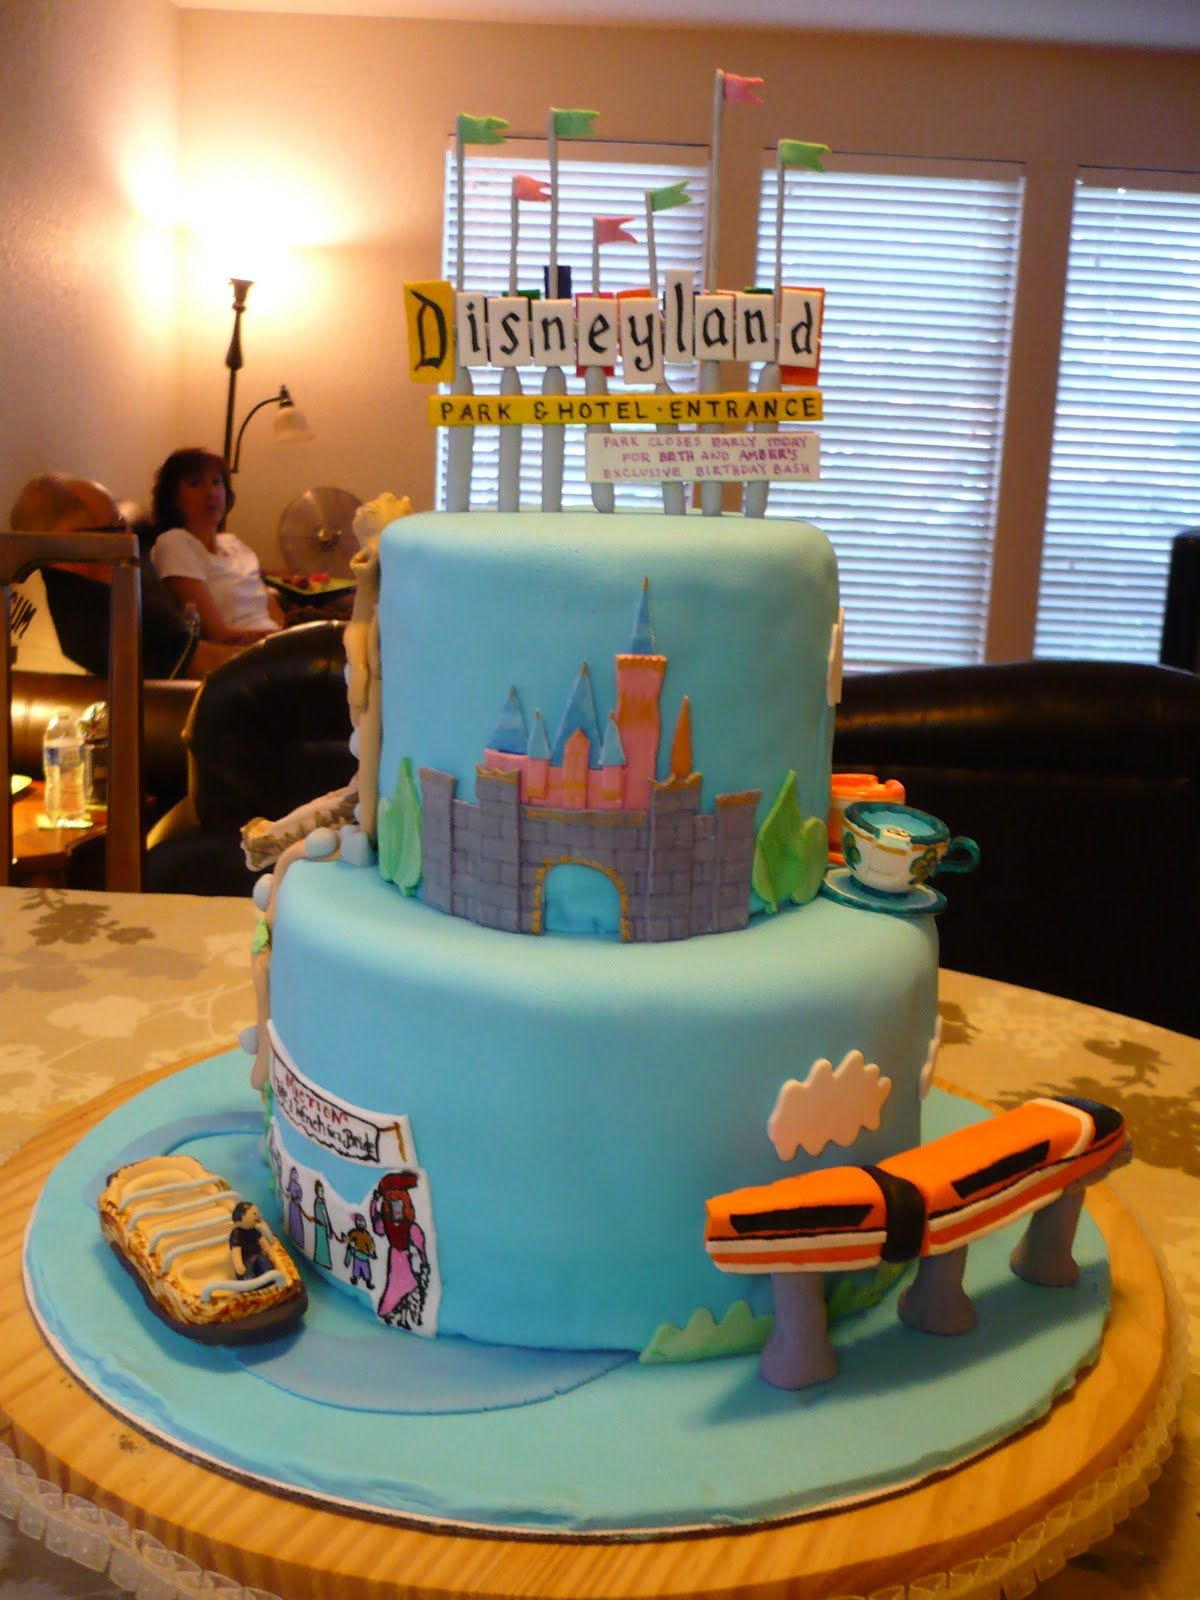 The Wright Report Disneyland Cake Fancy Cakes Pinterest Cake